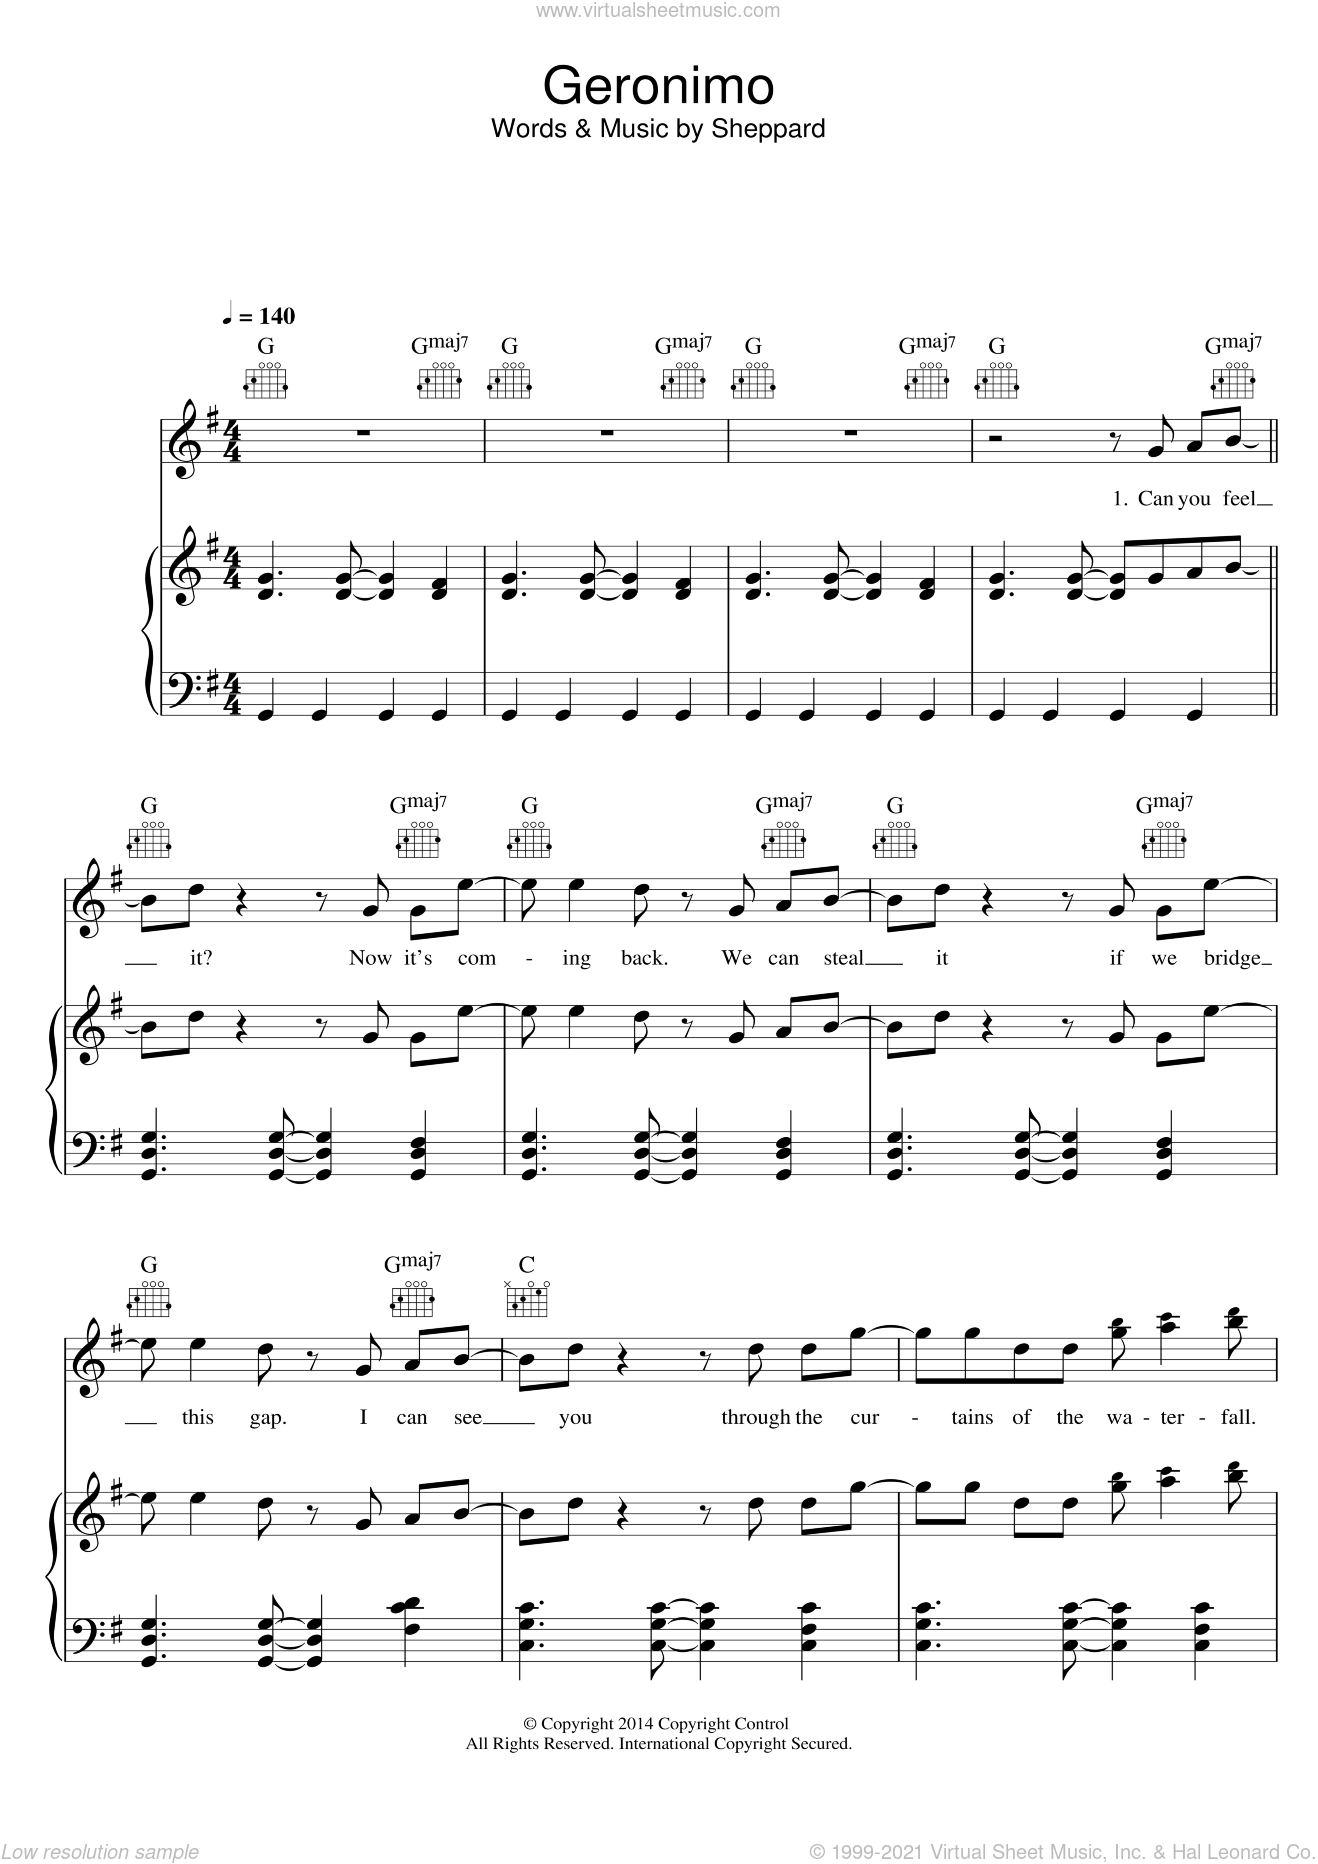 Geronimo sheet music for voice, piano or guitar by Sheppard. Score Image Preview.